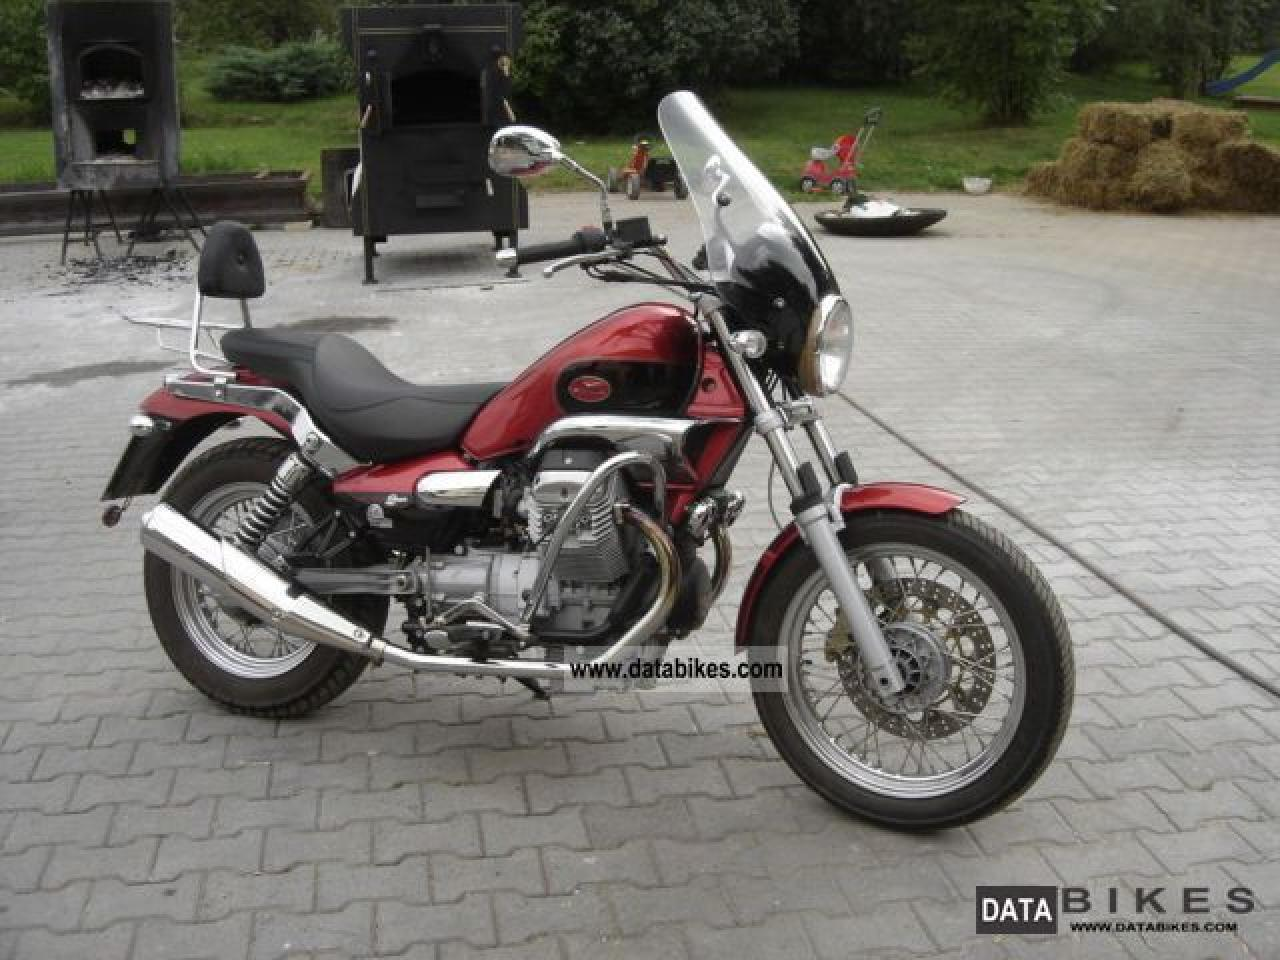 1995 moto guzzi nevada 750 moto zombdrive com. Black Bedroom Furniture Sets. Home Design Ideas